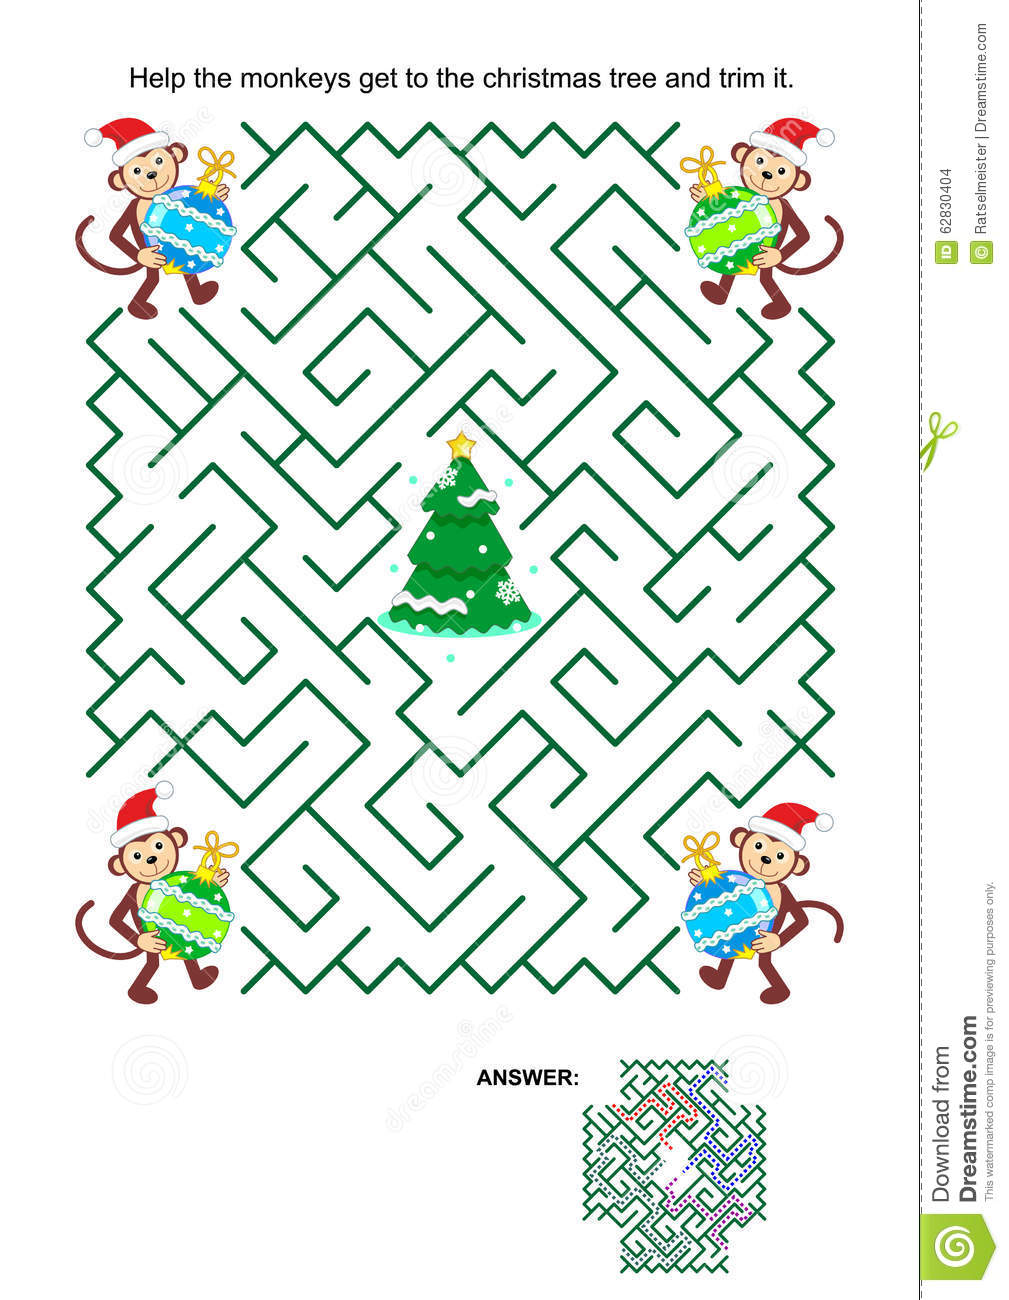 Maze game with monkey Santa helpers, baubles and christmas tree